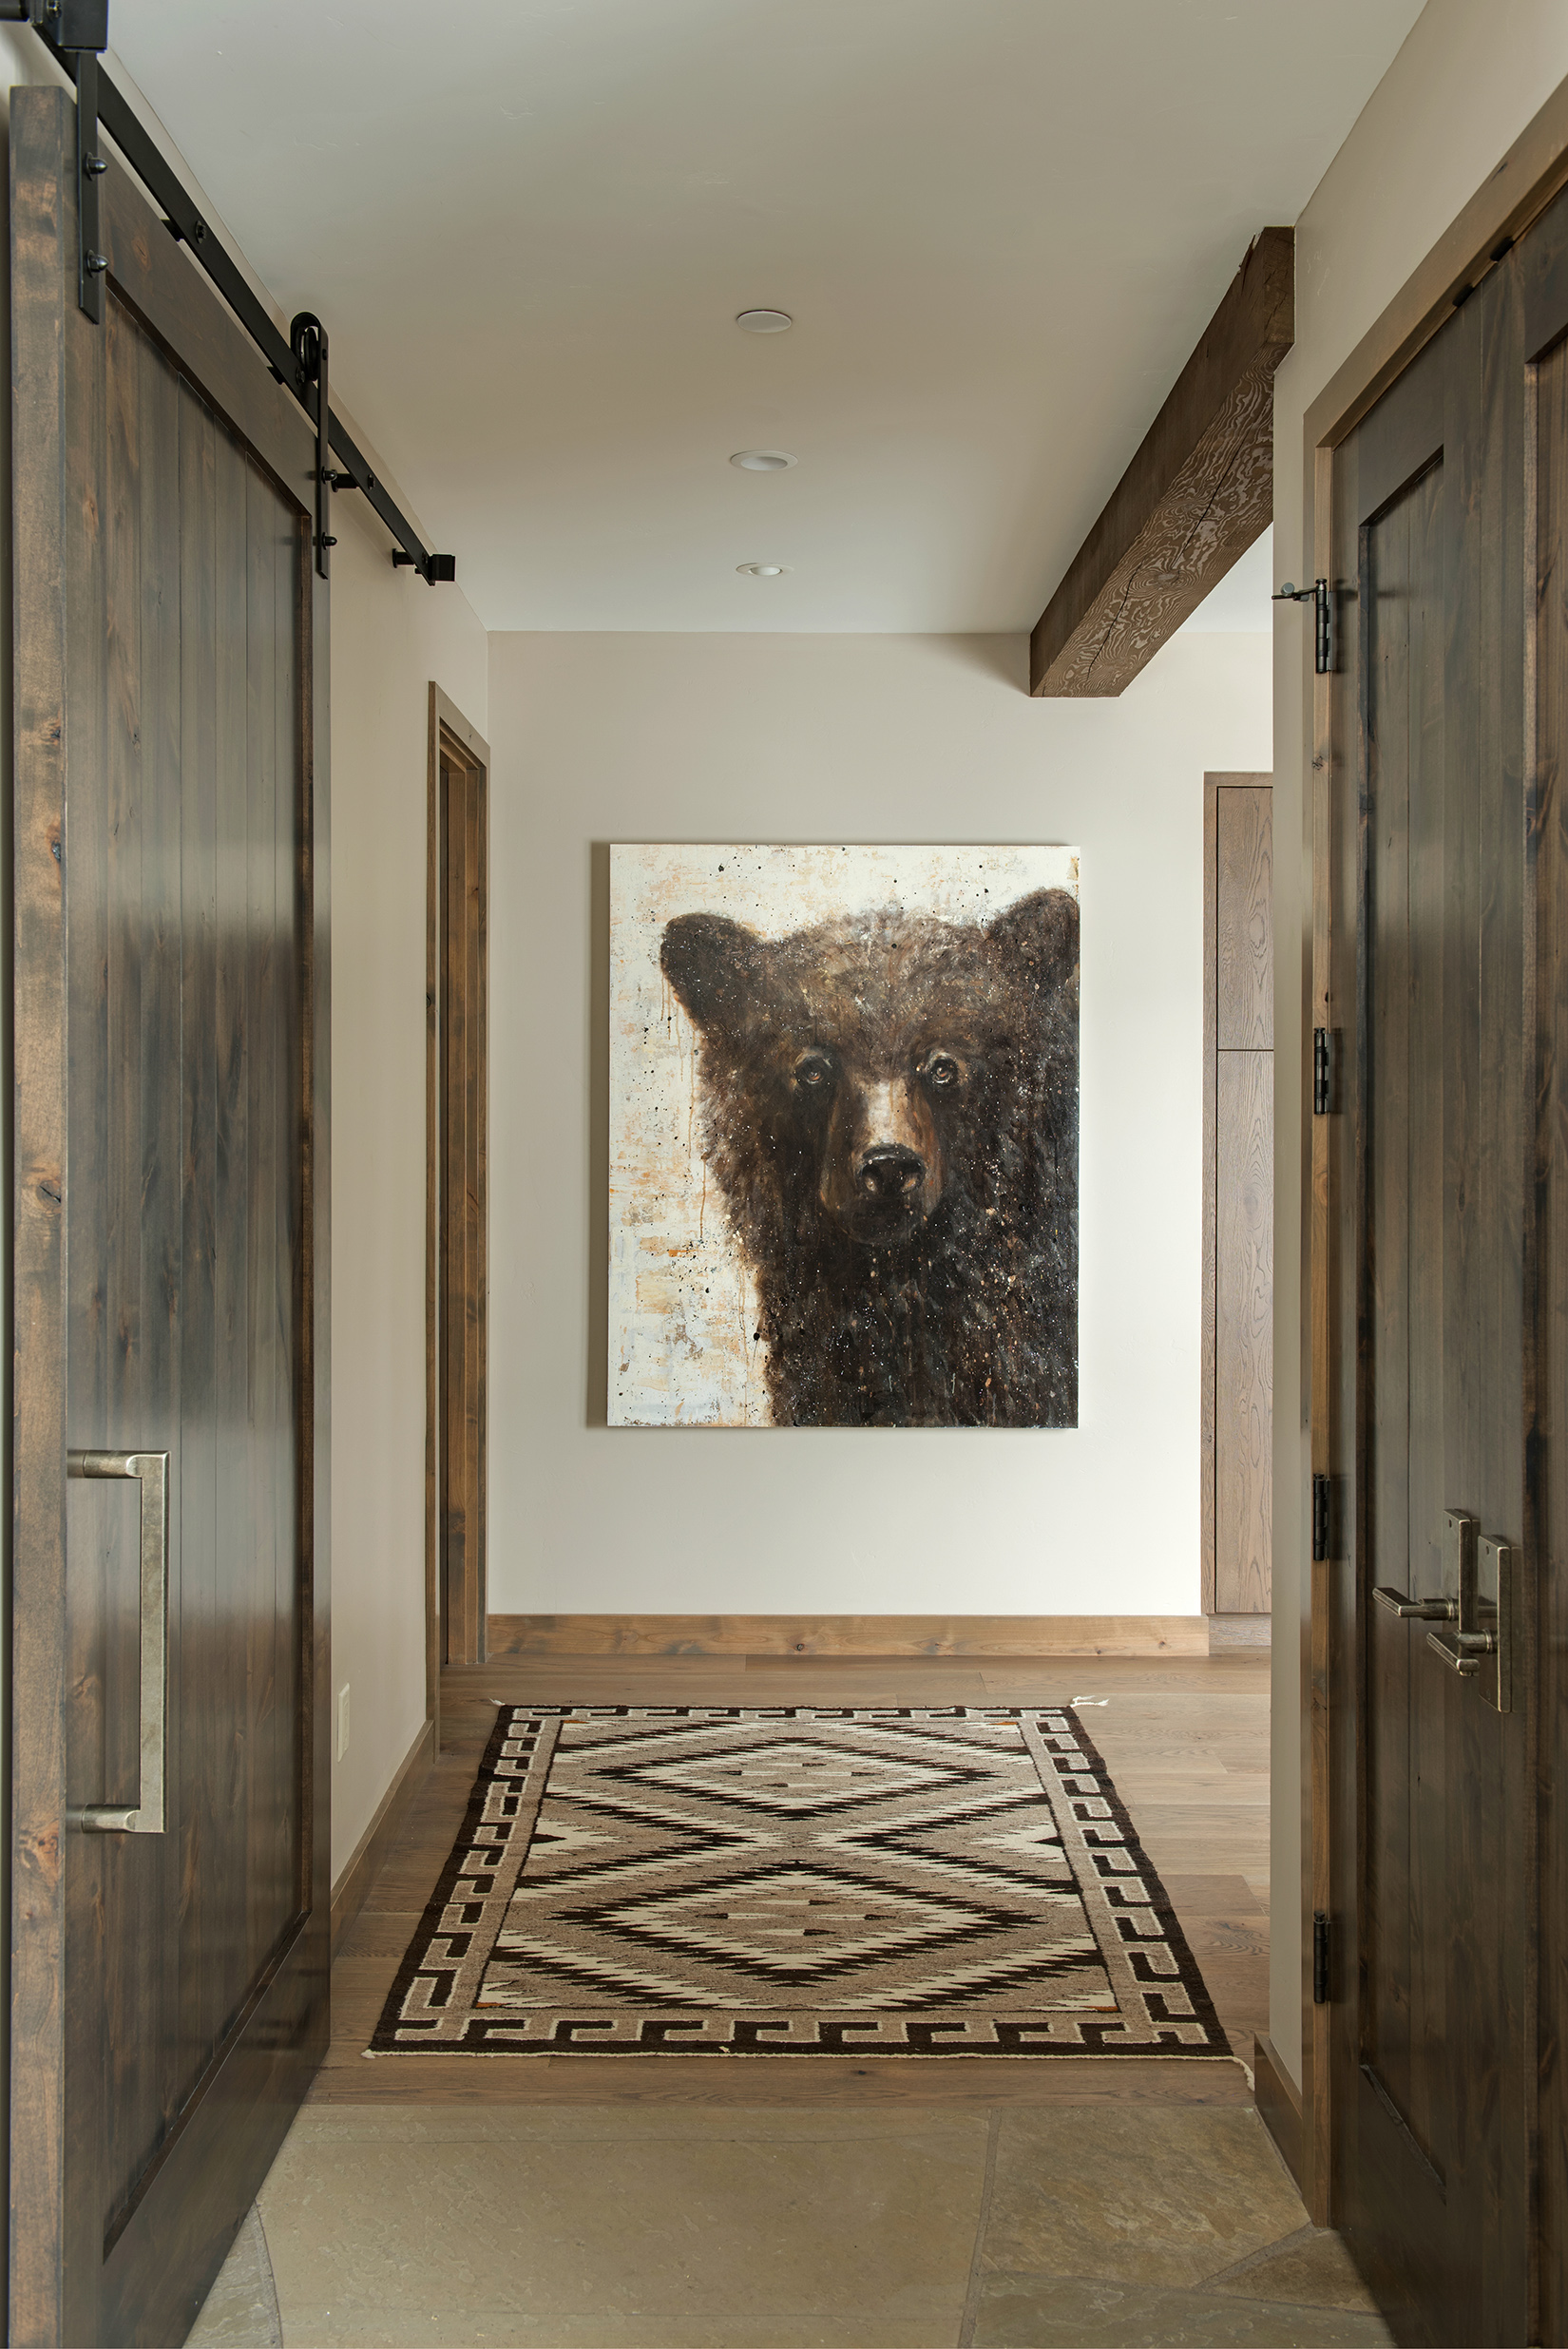 I love the art in this back hallway.